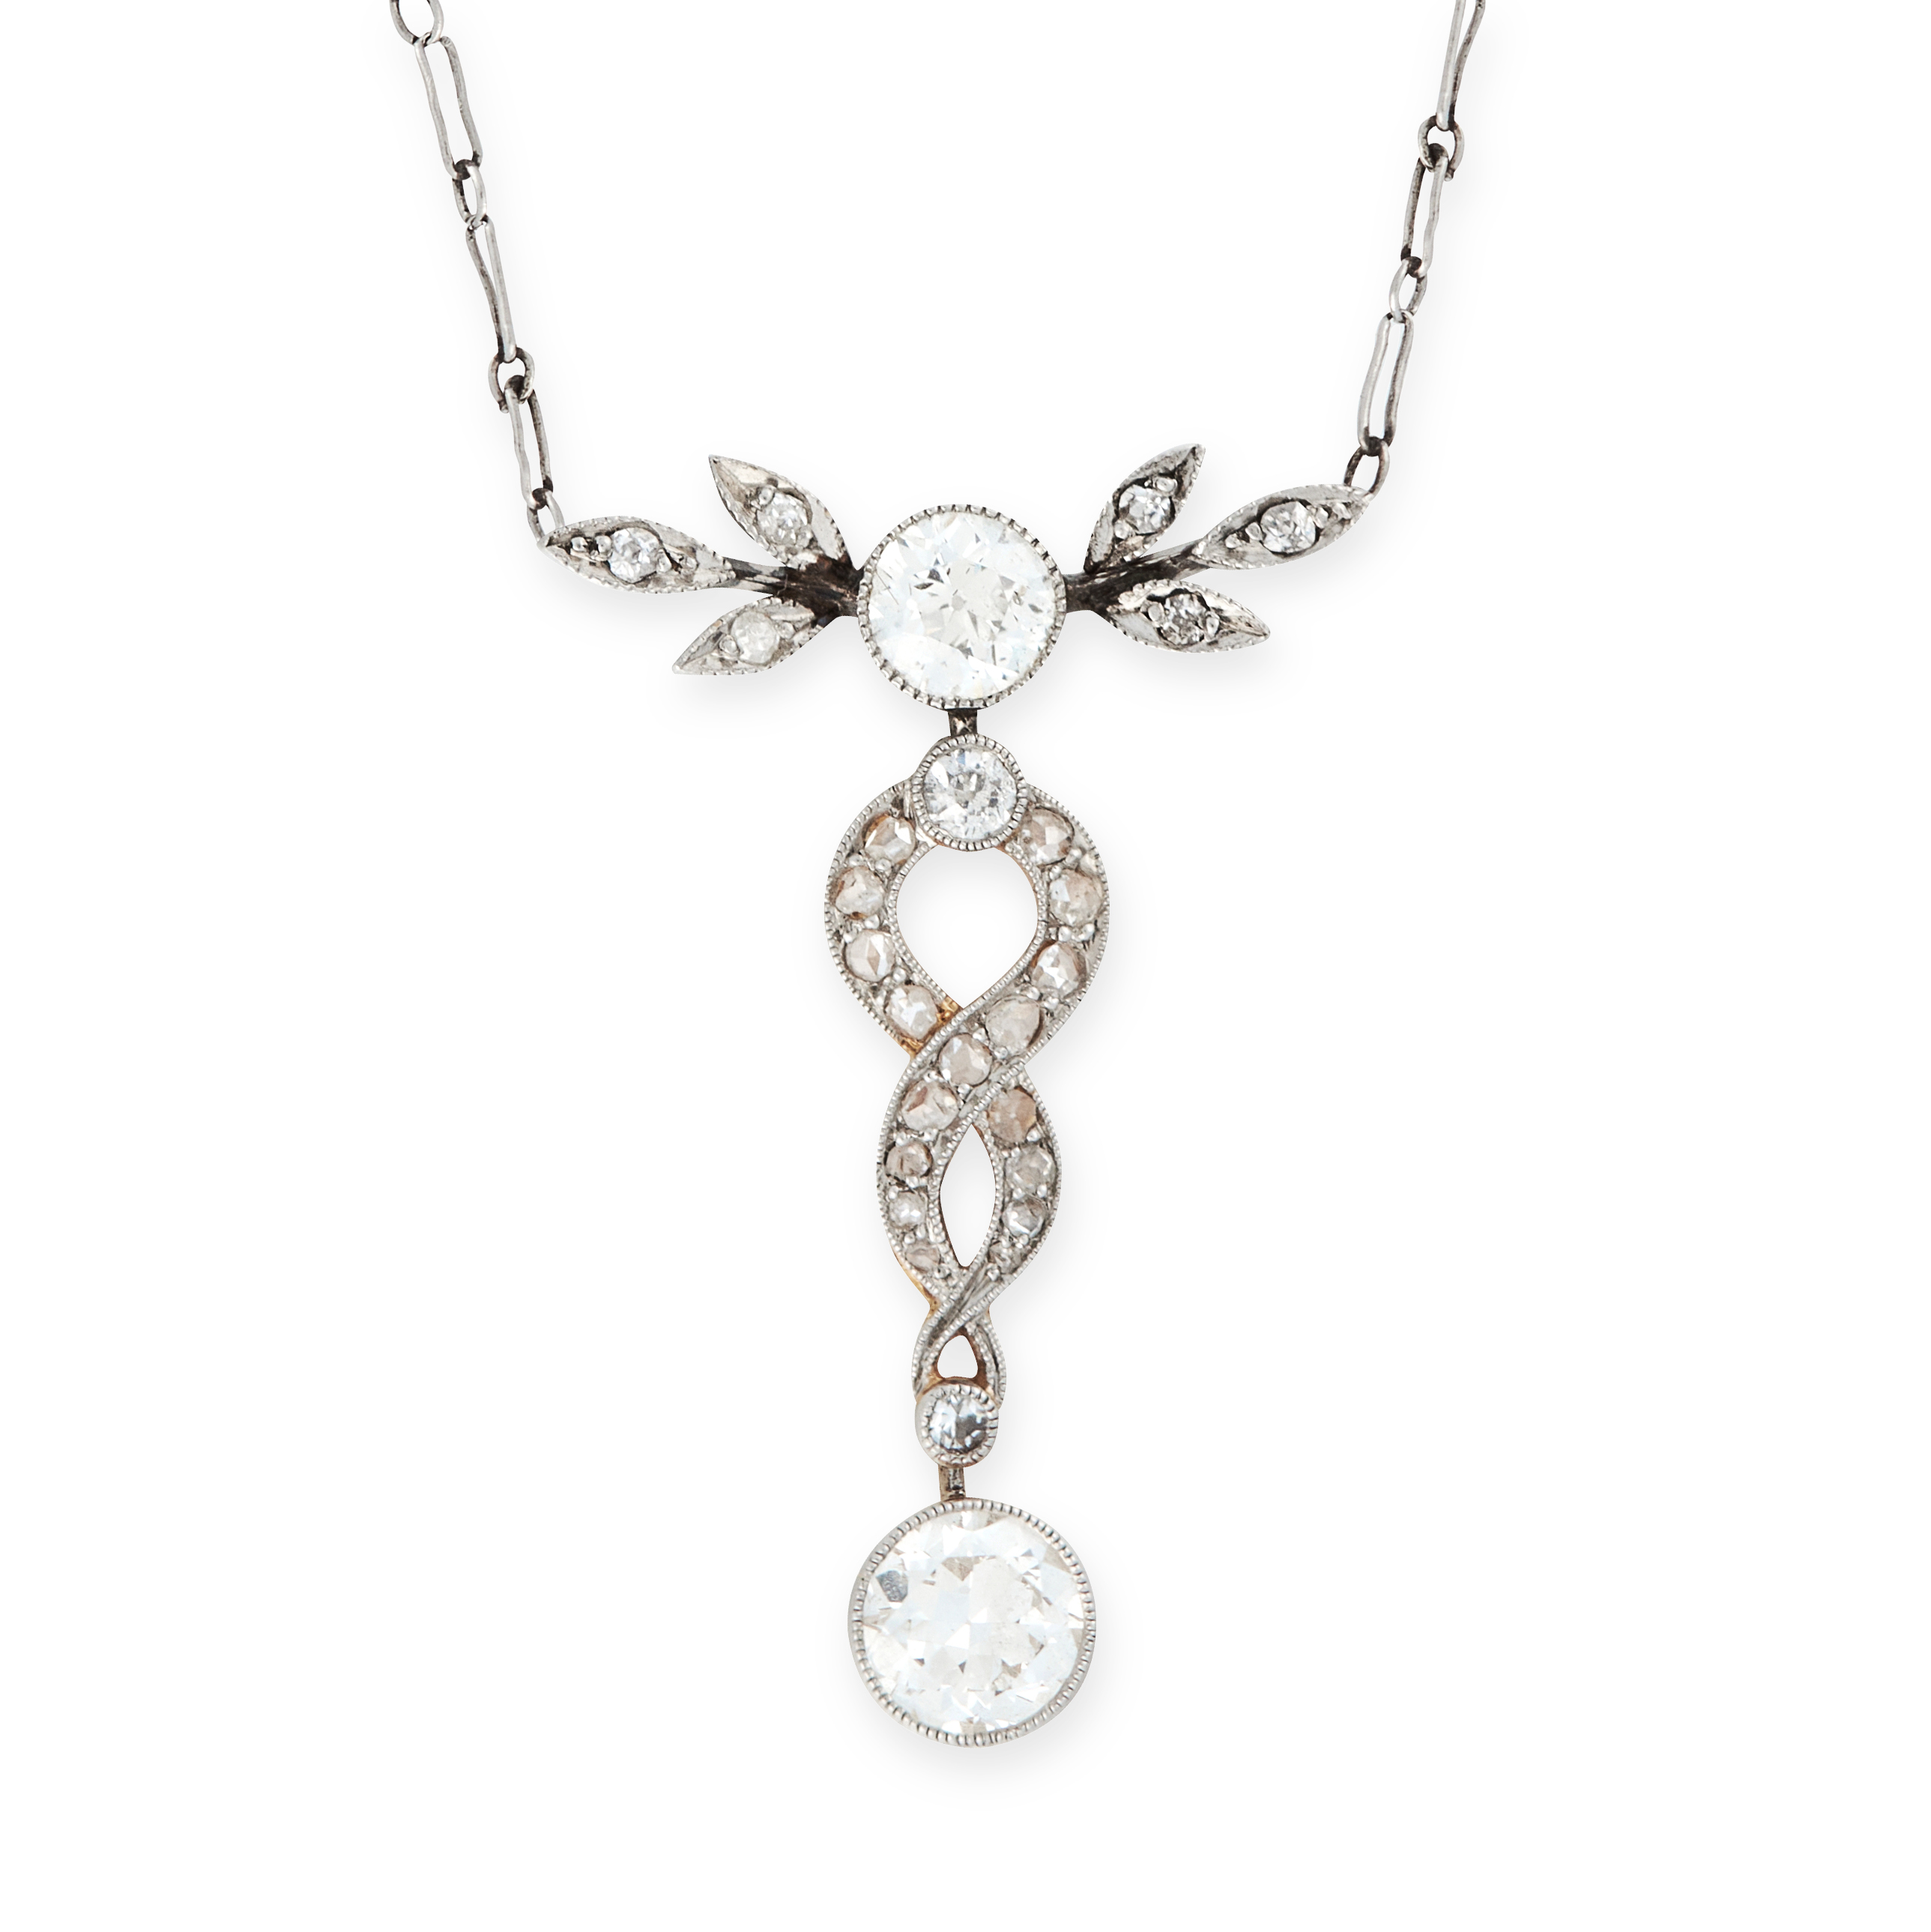 A DIAMOND PENDANT NECKLACE, EARLY 20TH CENTURY set with two principal old cut diamonds accented by